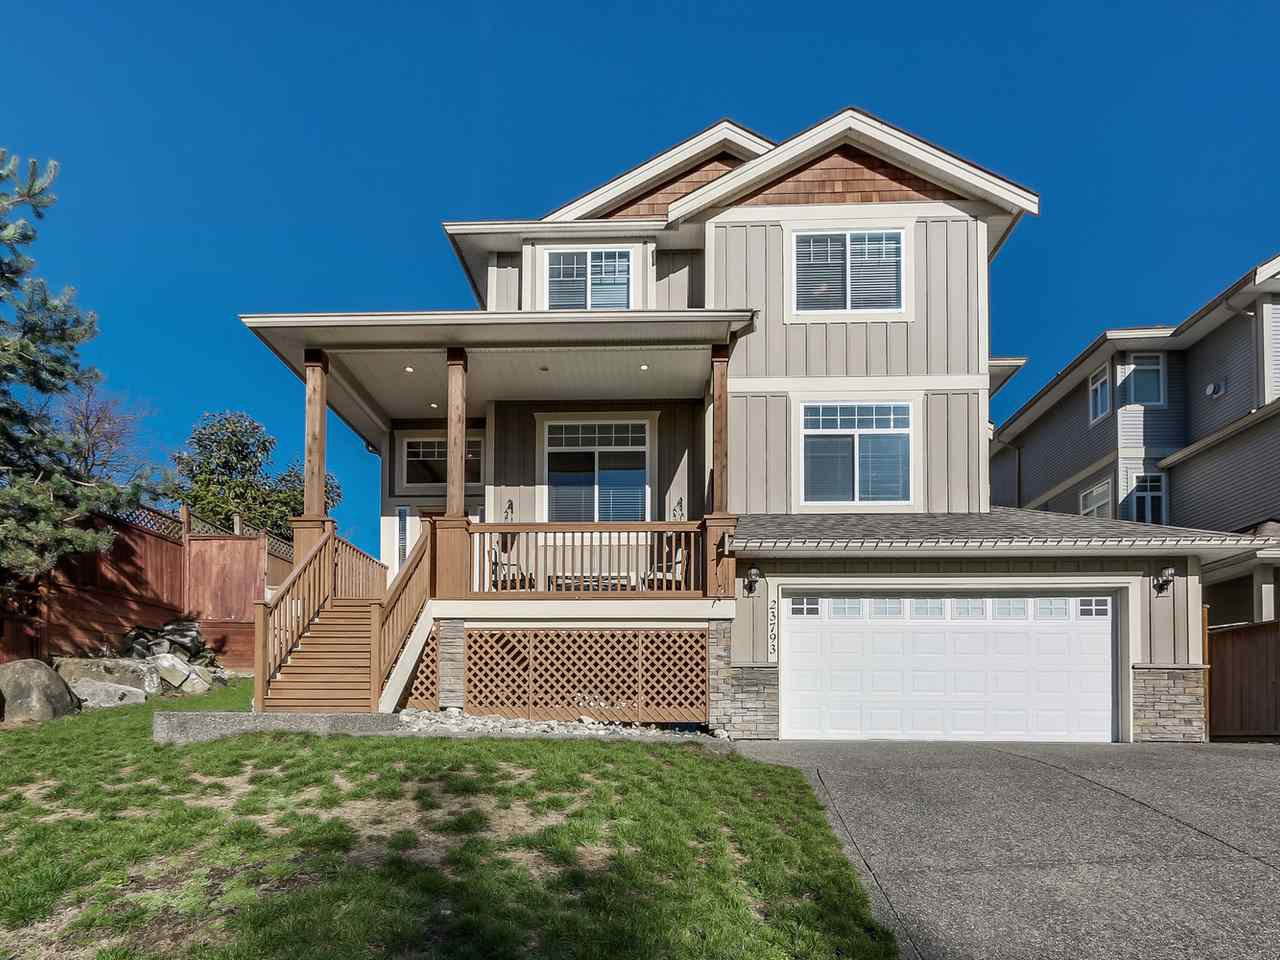 Main Photo: 23793 132A Avenue in Maple Ridge: Silver Valley House for sale : MLS®# R2032970